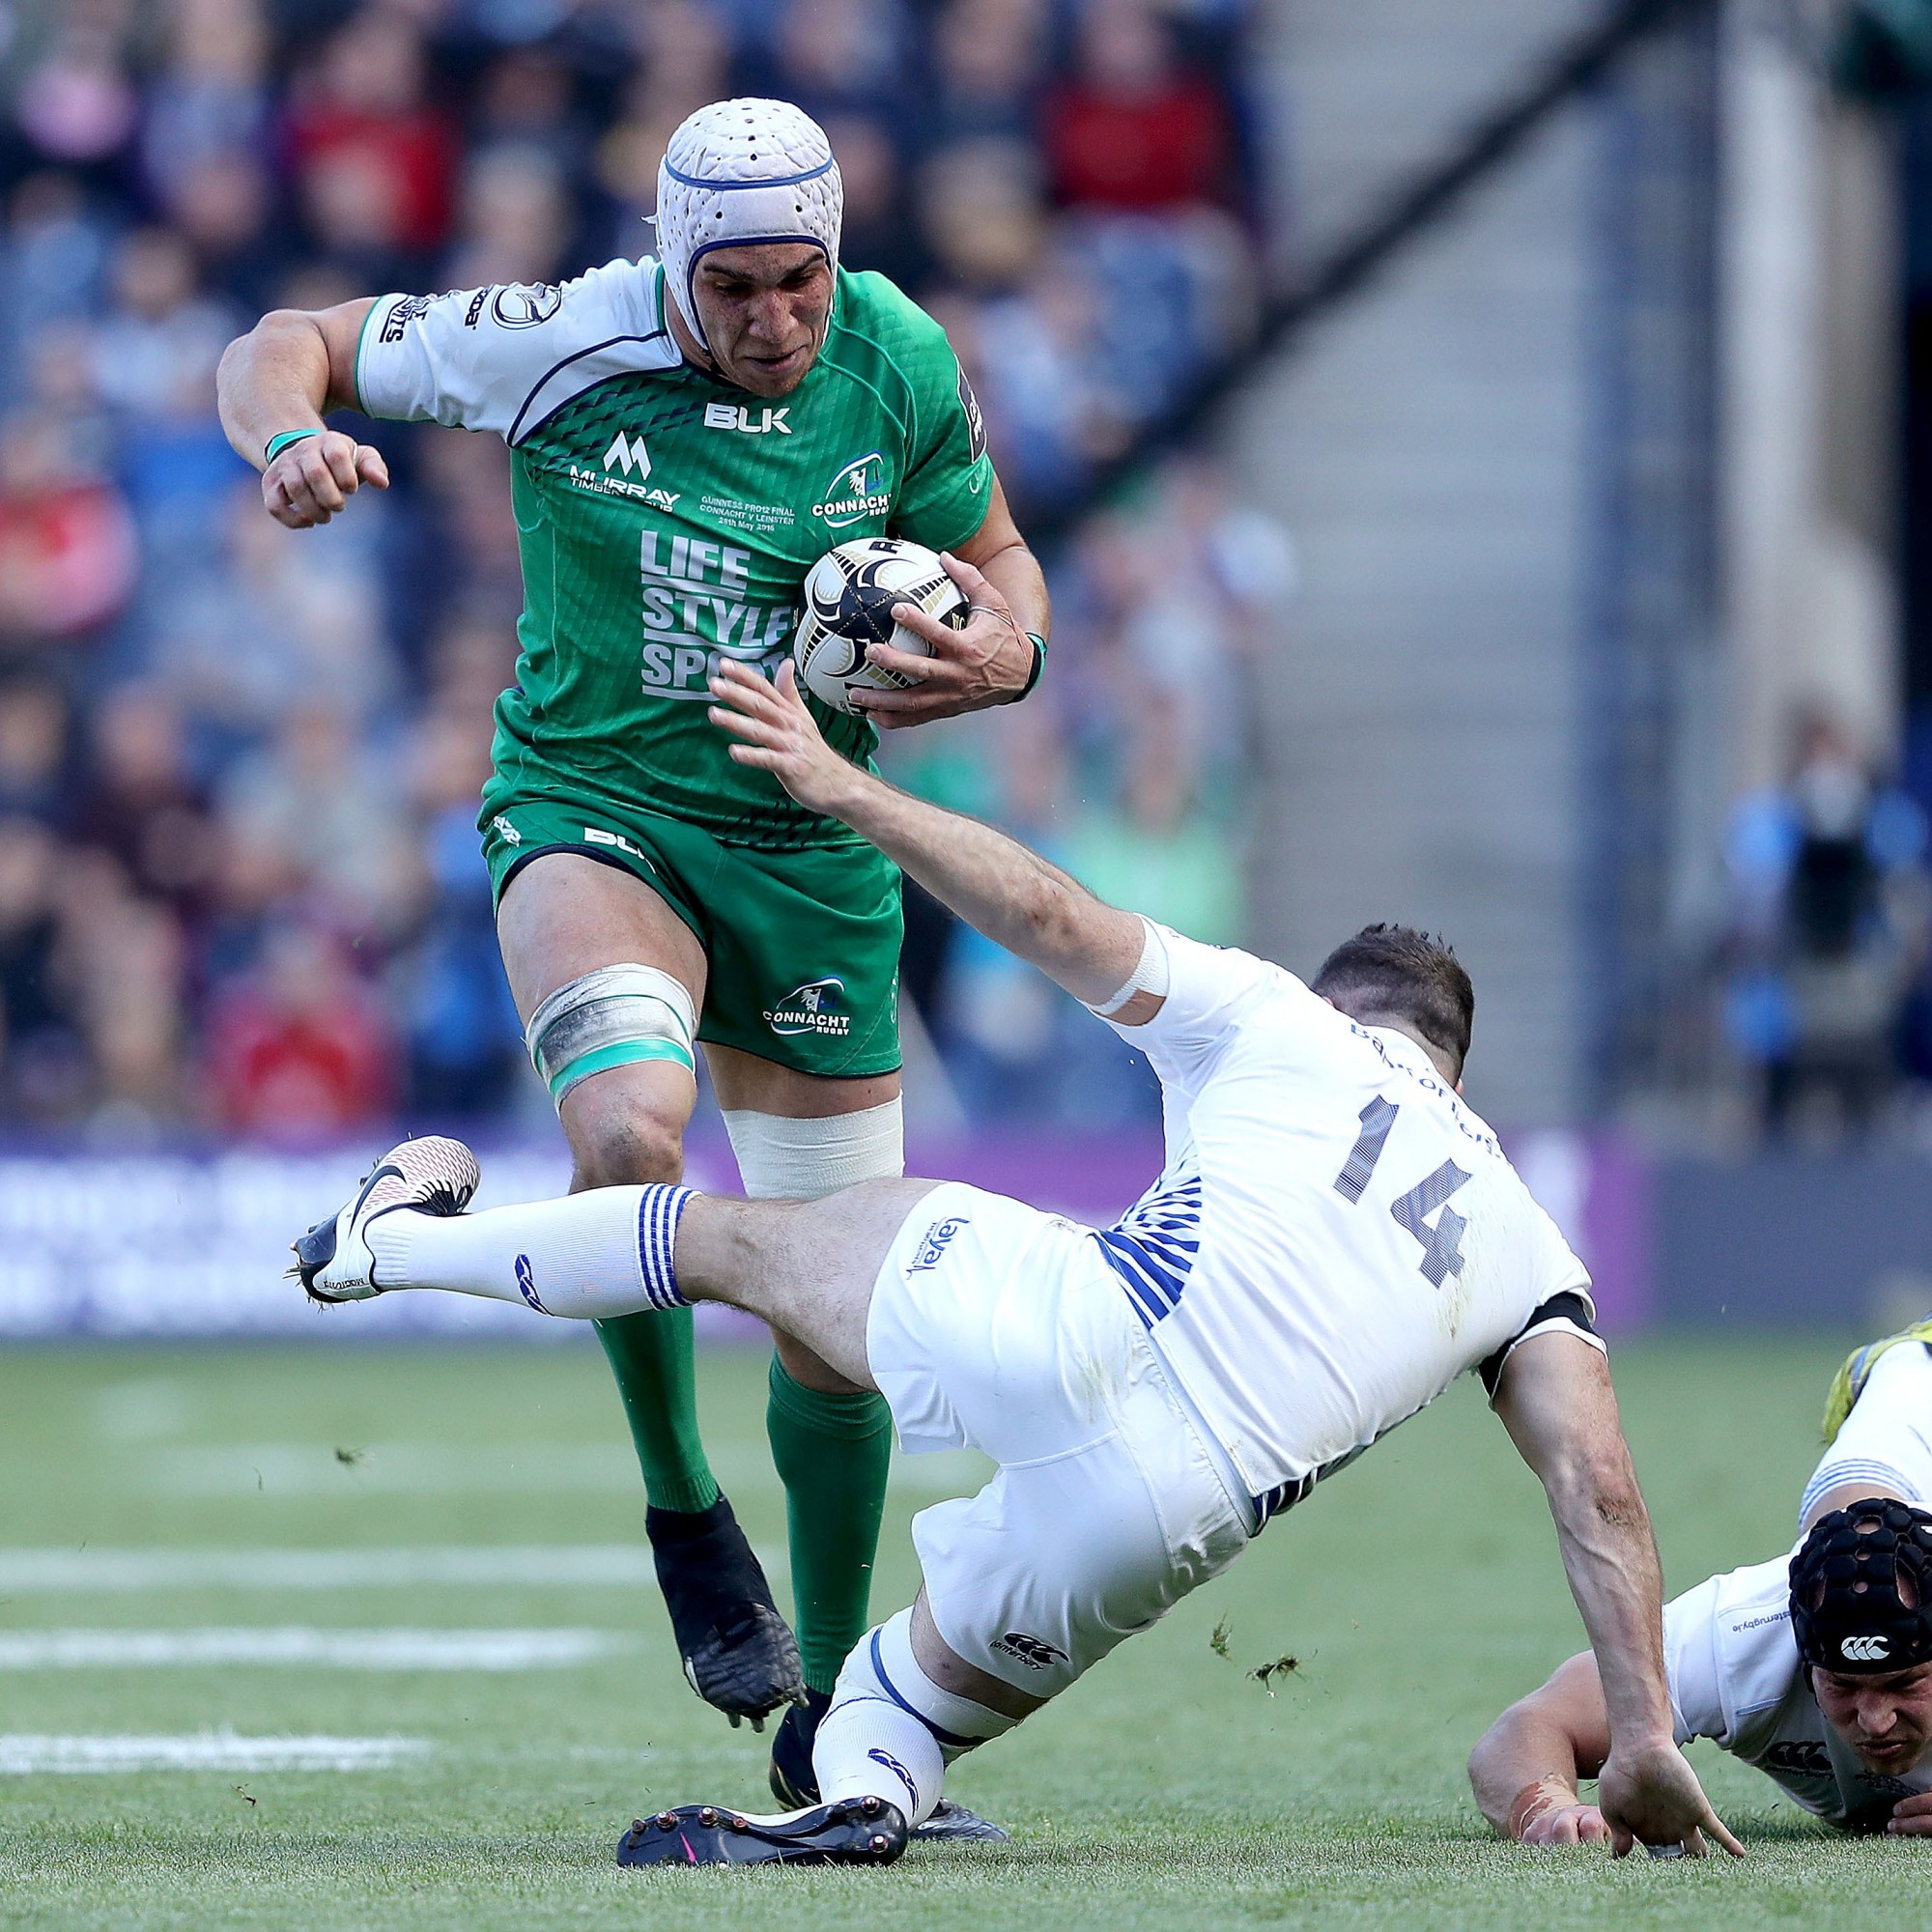 Dillane excited to front up to Boks after Connacht's Pro12 glory